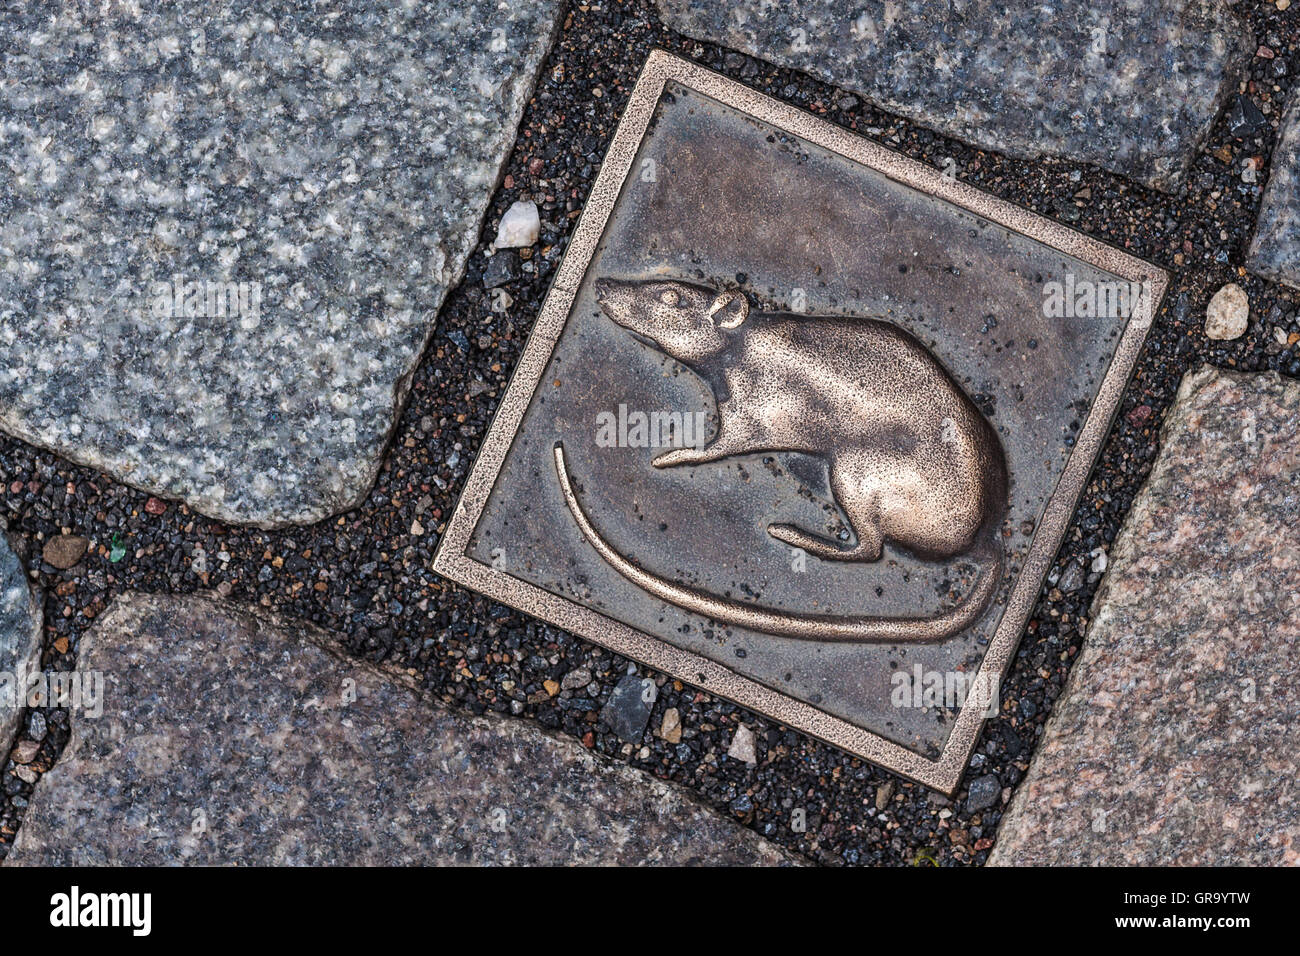 Bronze Rat As A Guide In The Pavement Of The Town Of Hamelin - Stock Image